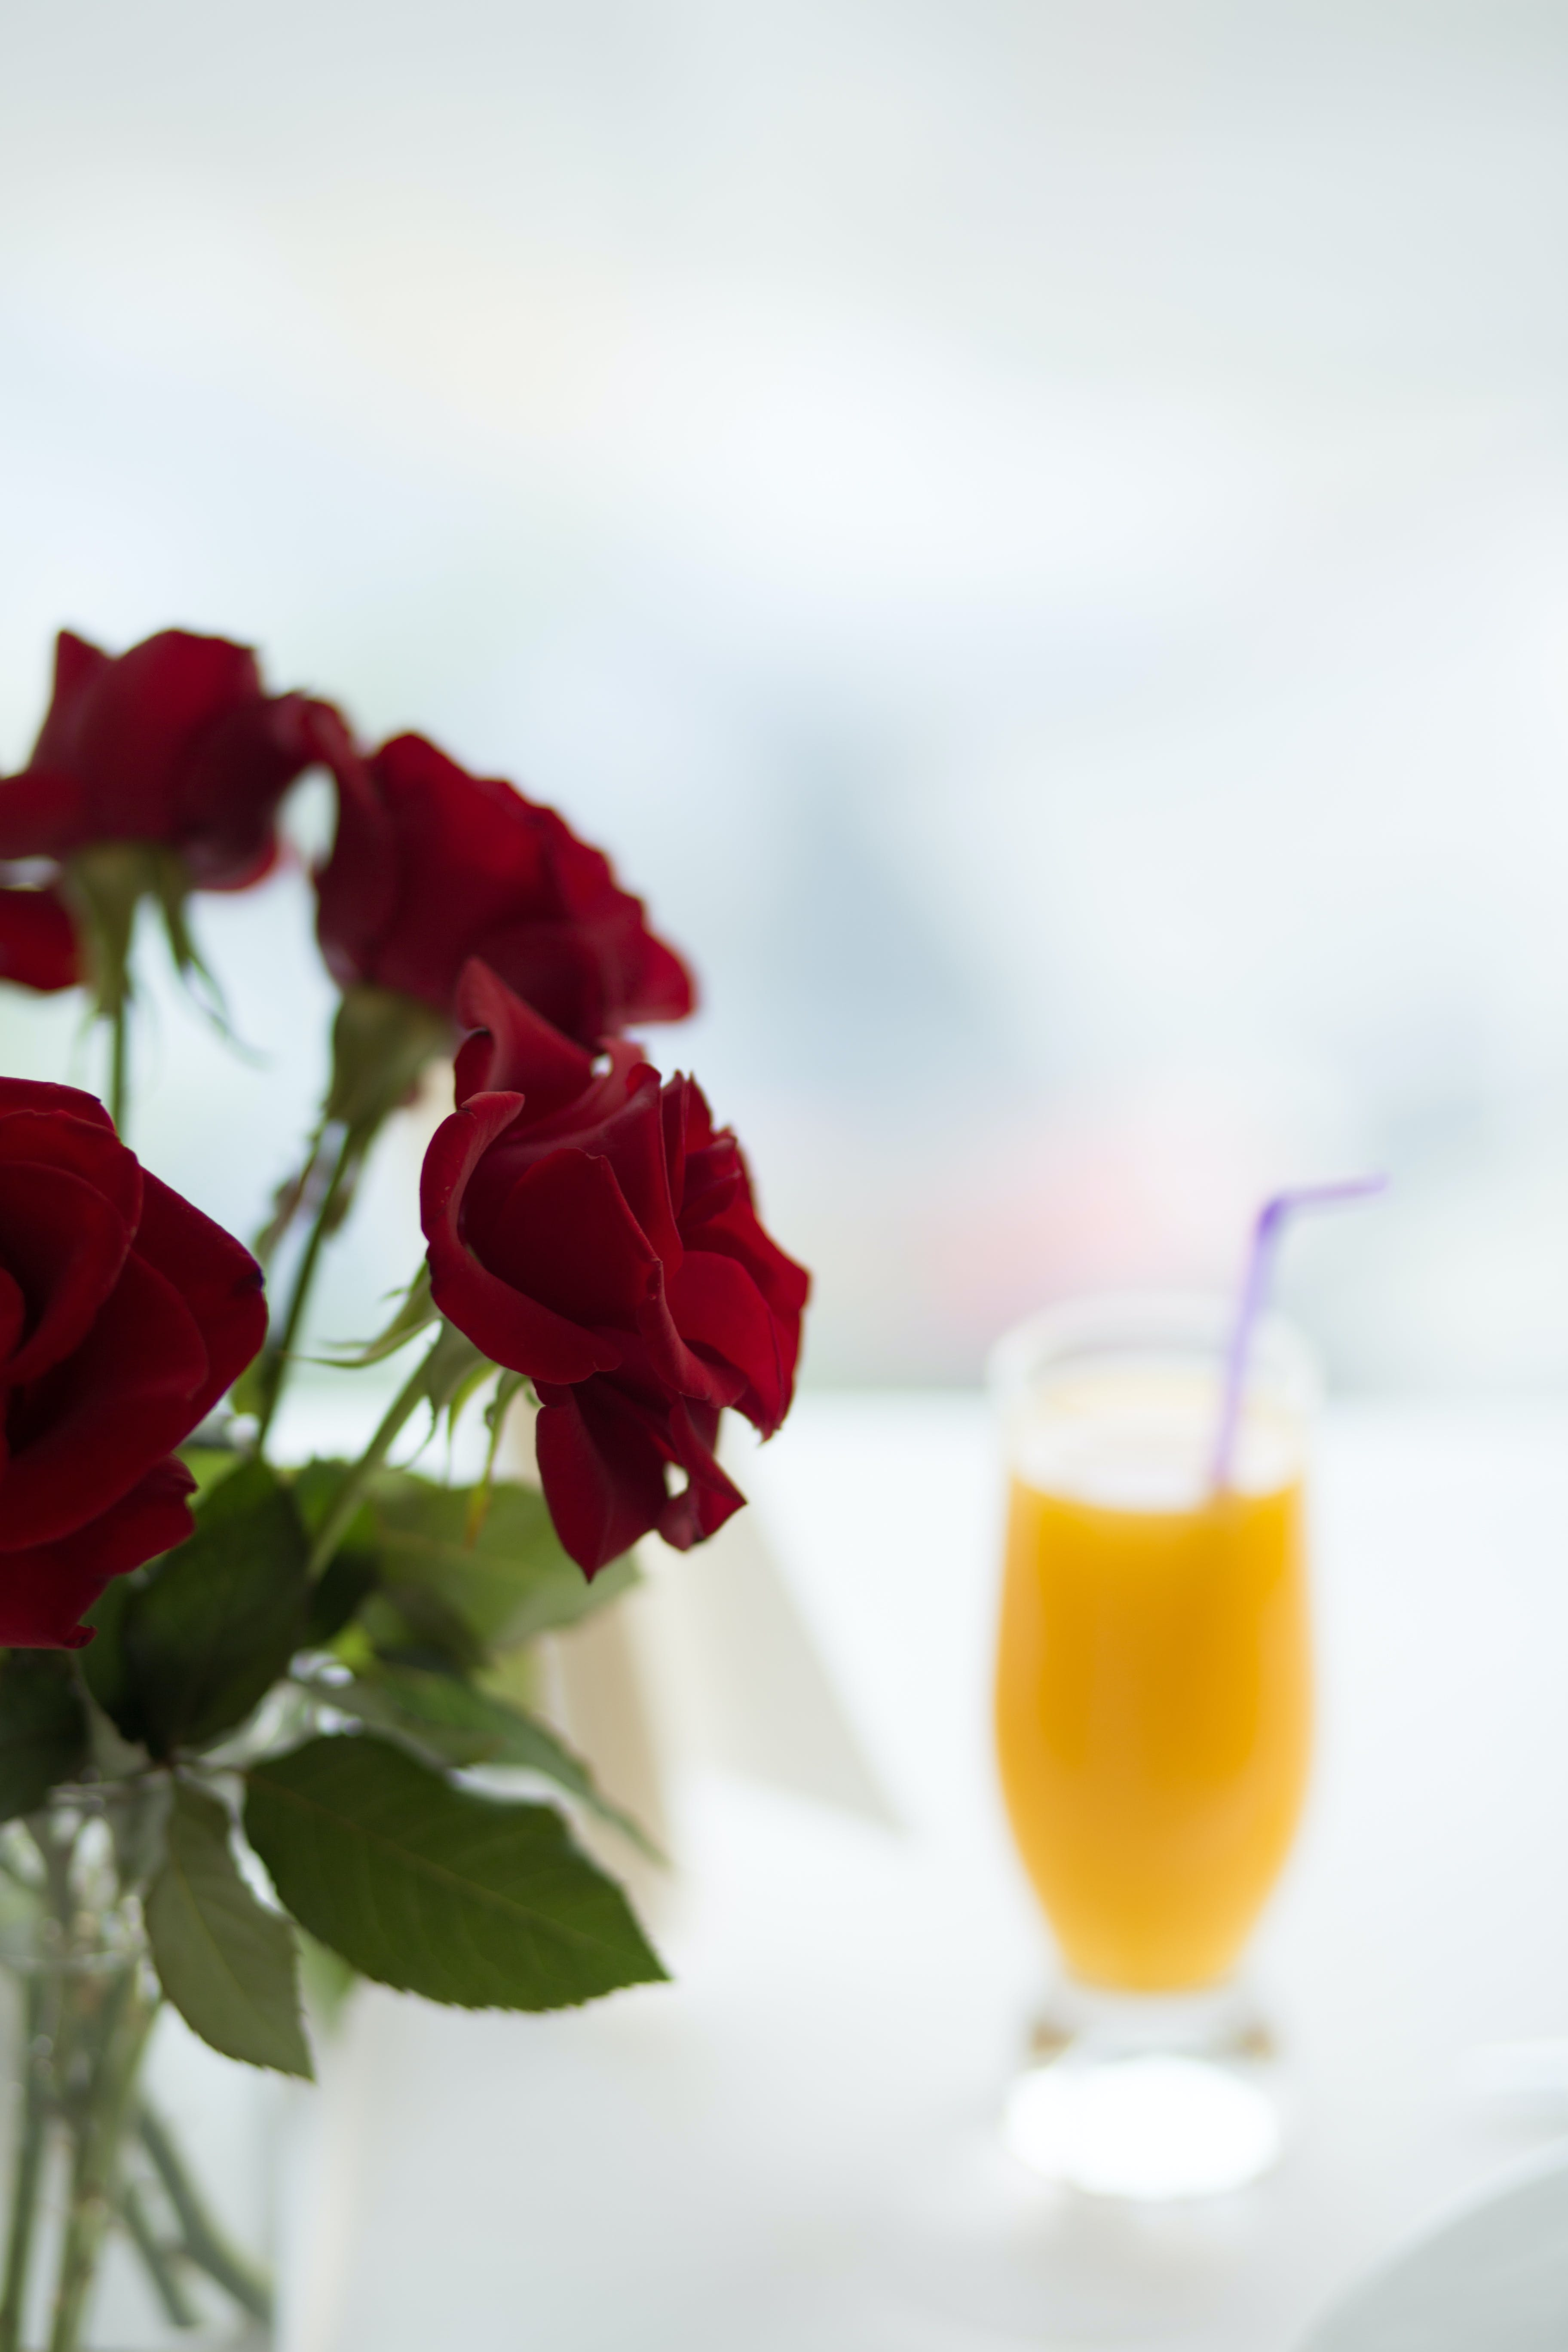 Selective-focus Photo of Red Roses